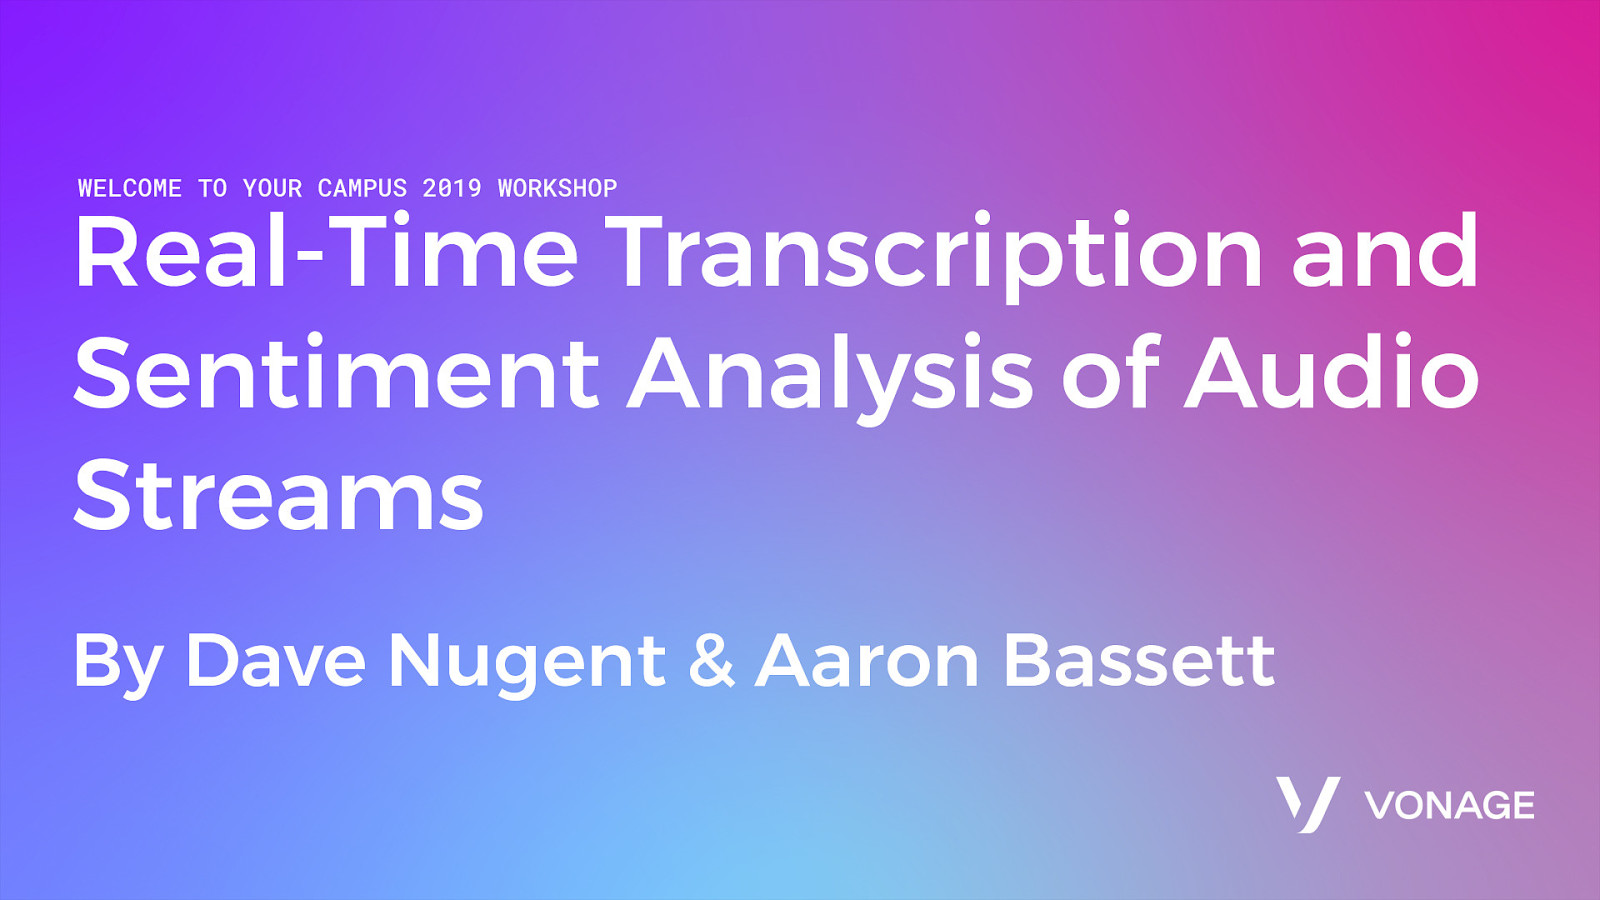 Real-Time Transcription and Sentiment Analysis of Audio Streams